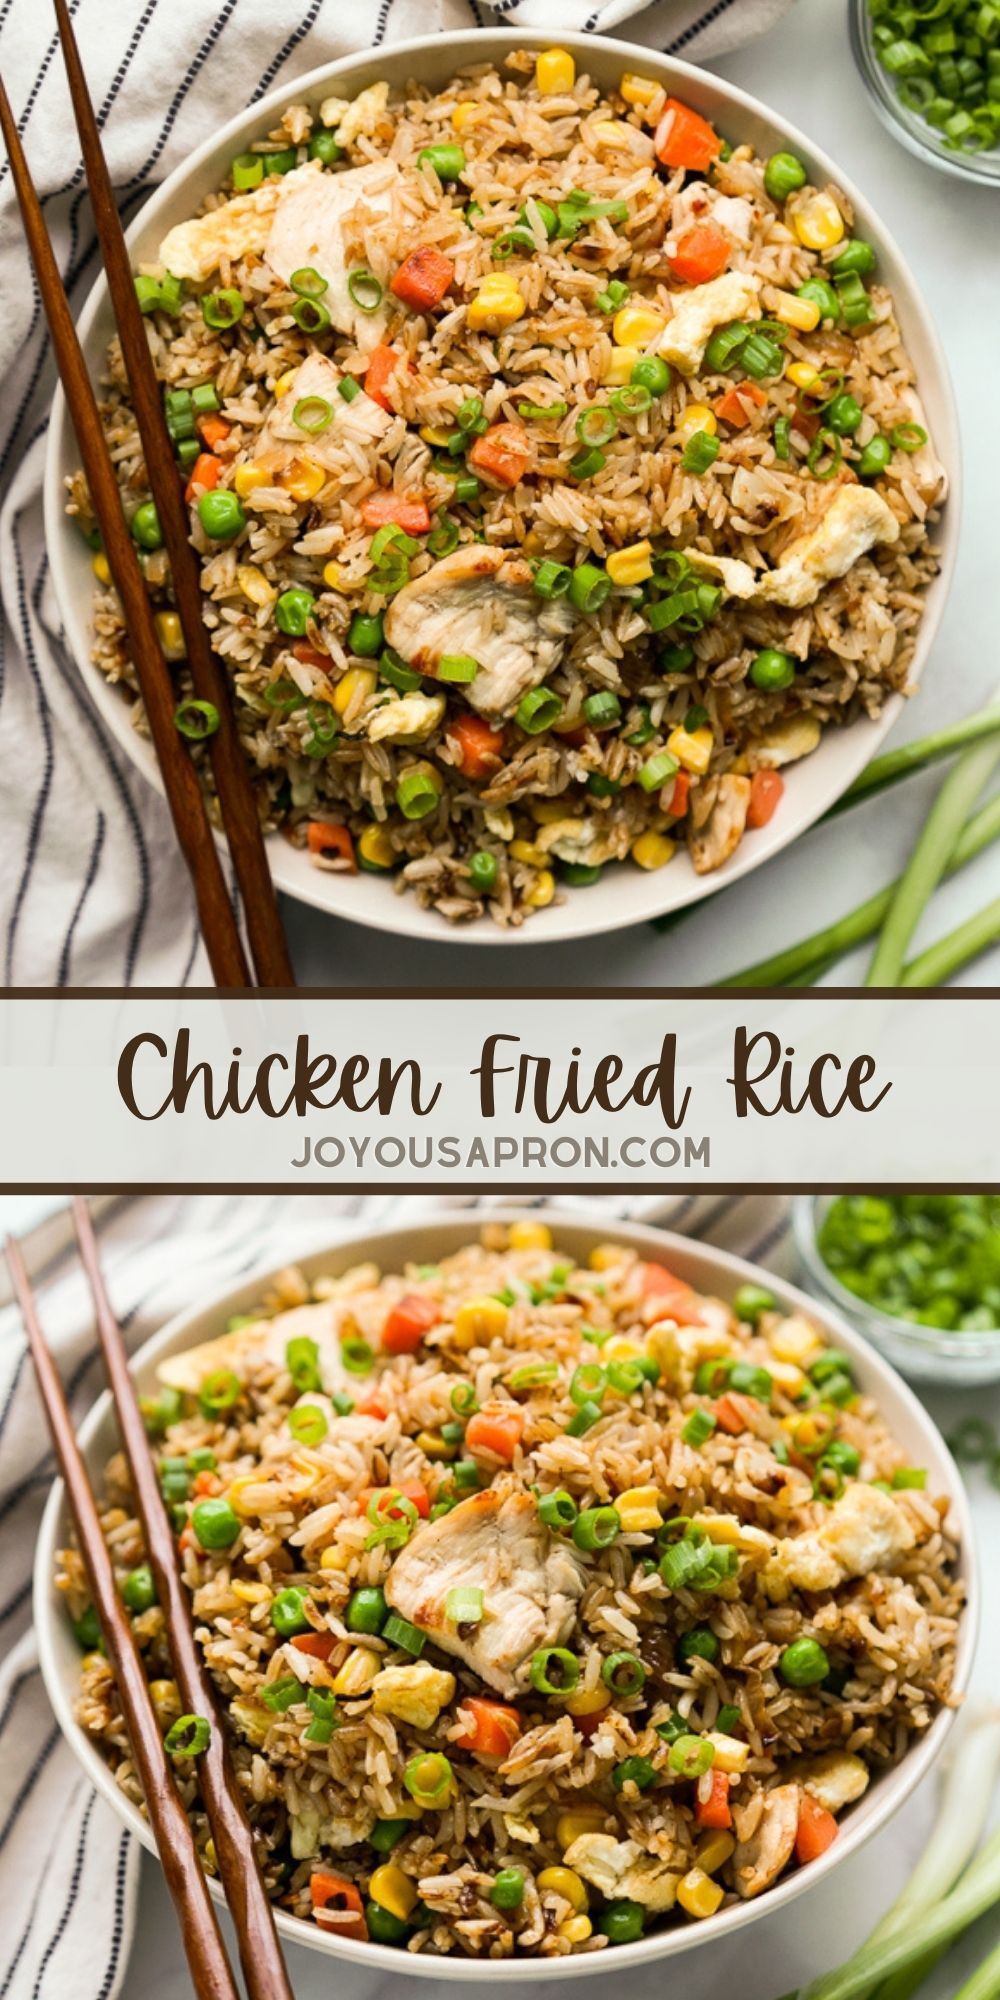 Easy Chicken Fried Rice The Best Fried Rice Recipe Joyous Apron Recipe In 2021 Chicken Fried Rice Easy Fried Rice Chicken Fried Rice